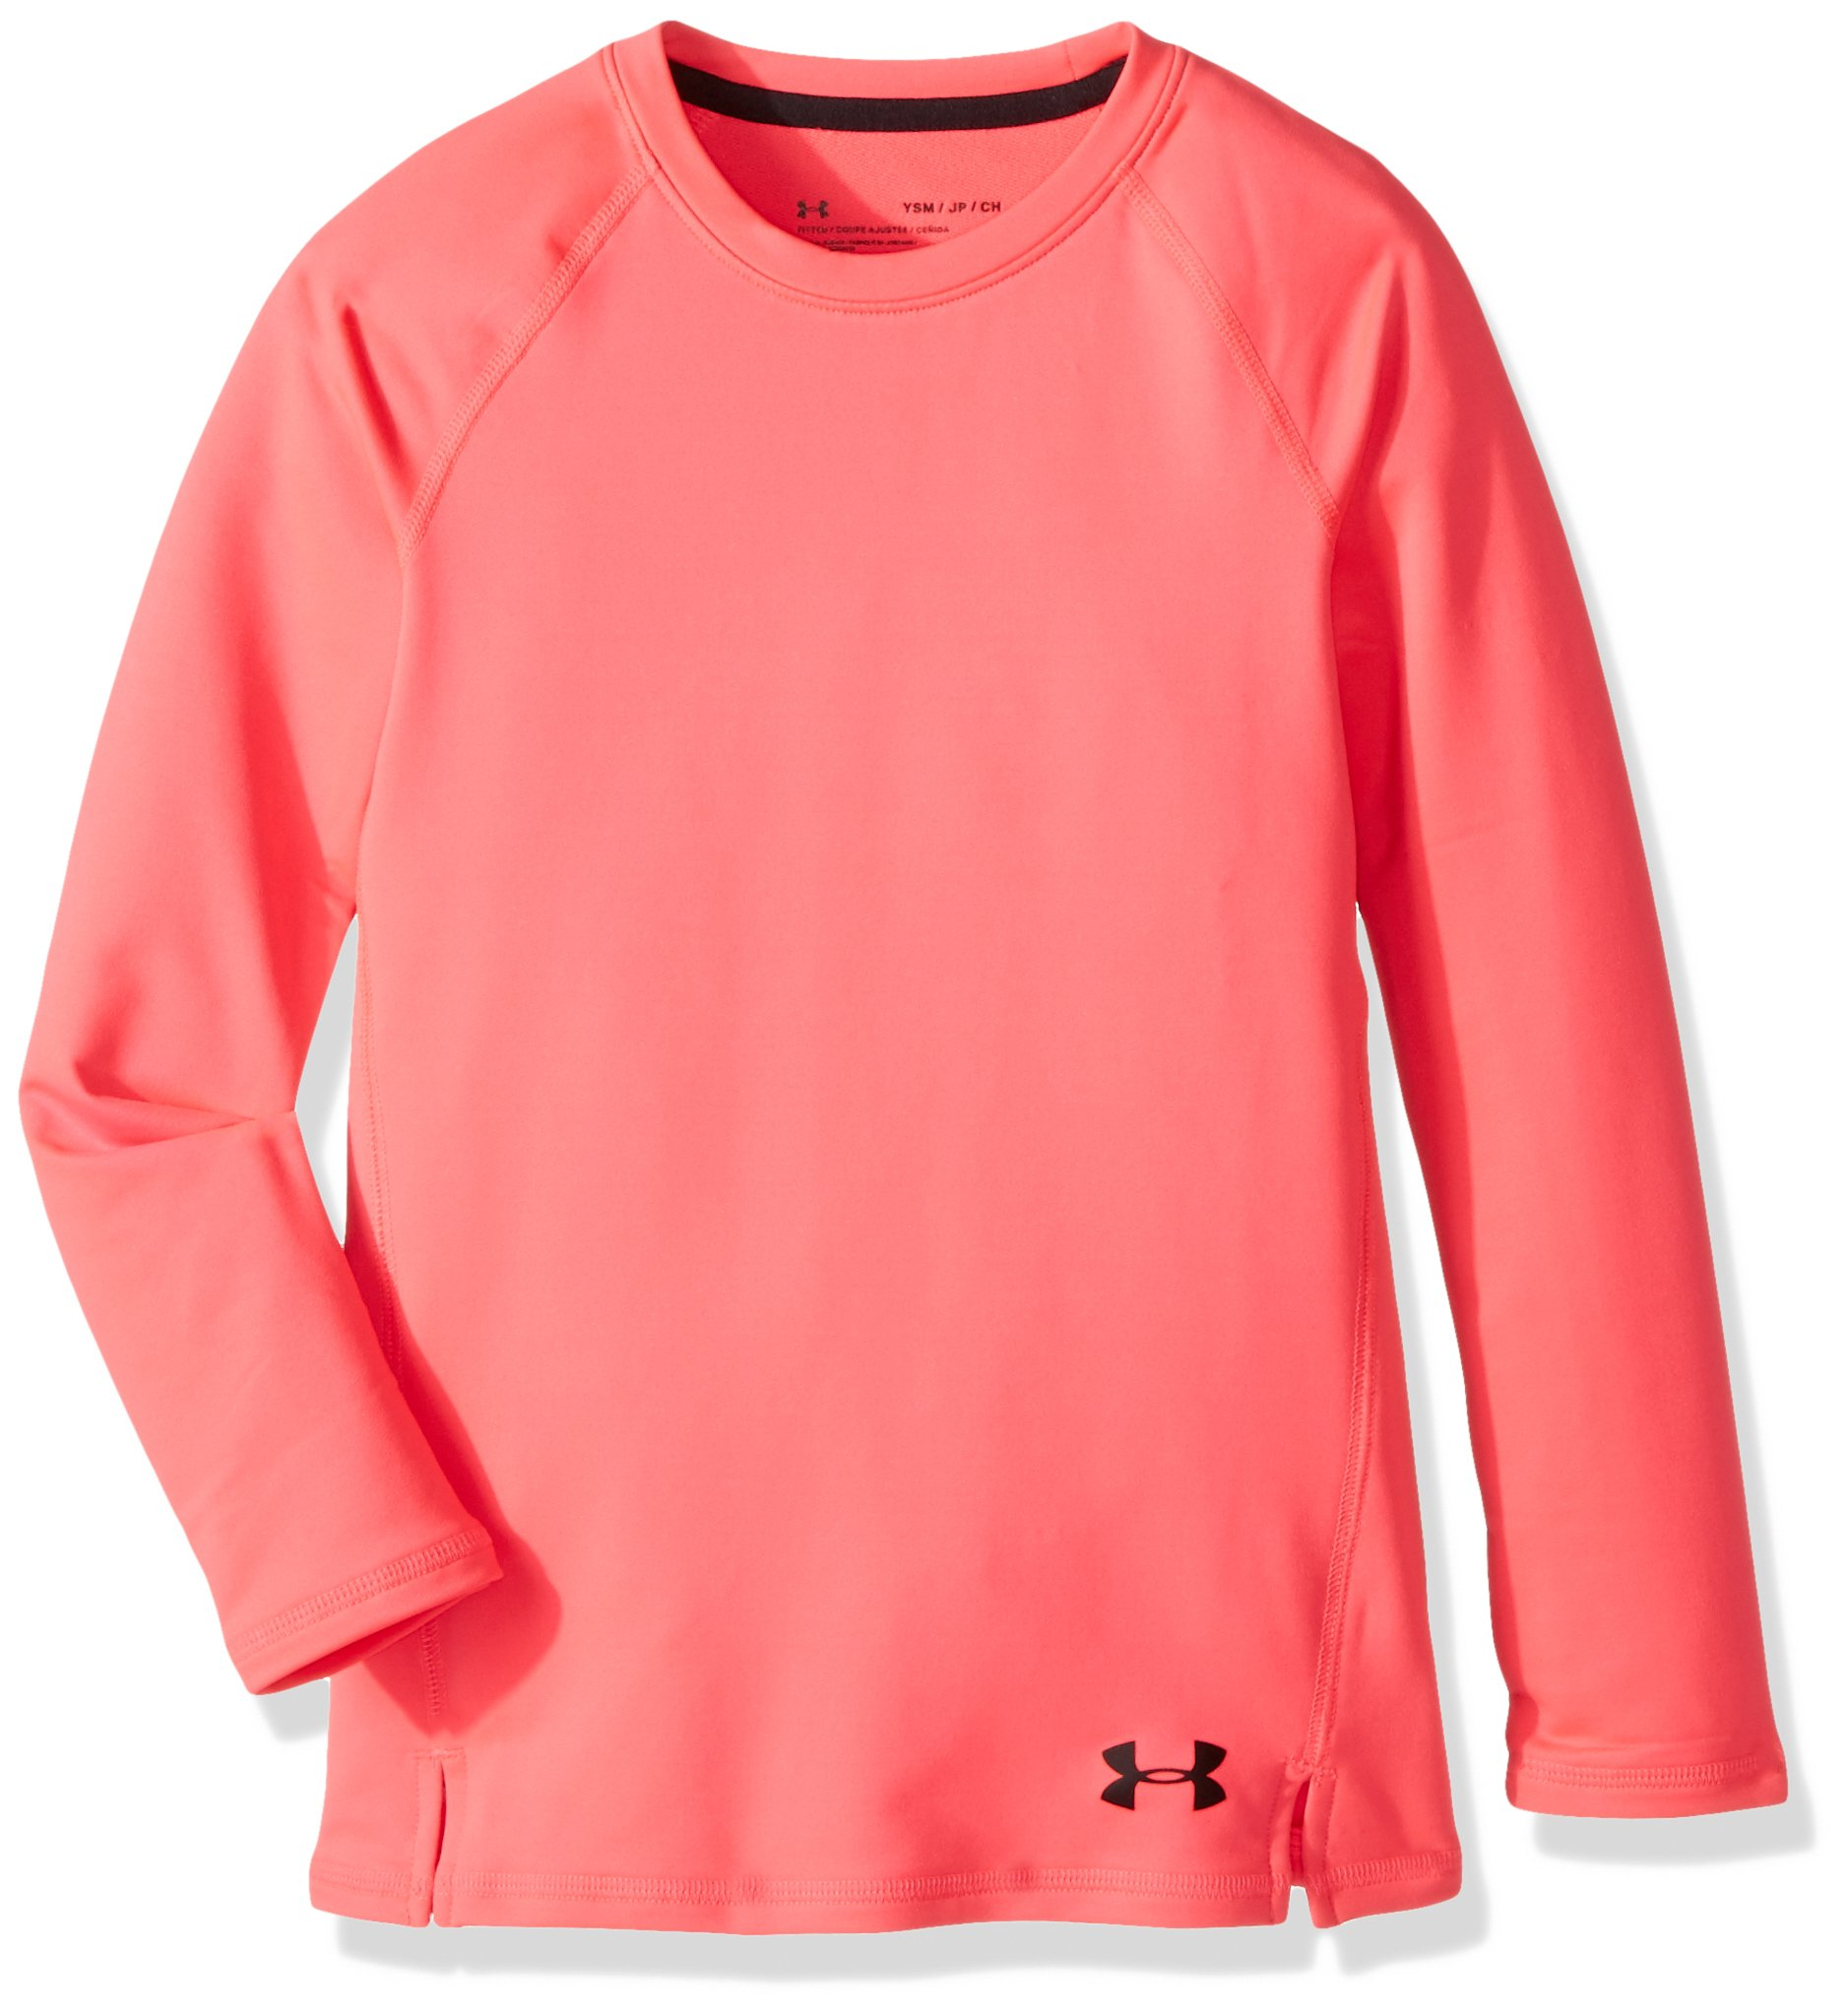 Under Armour Girls' ColdGear Crew Neck,Penta Pink (975)/Black, Youth Large